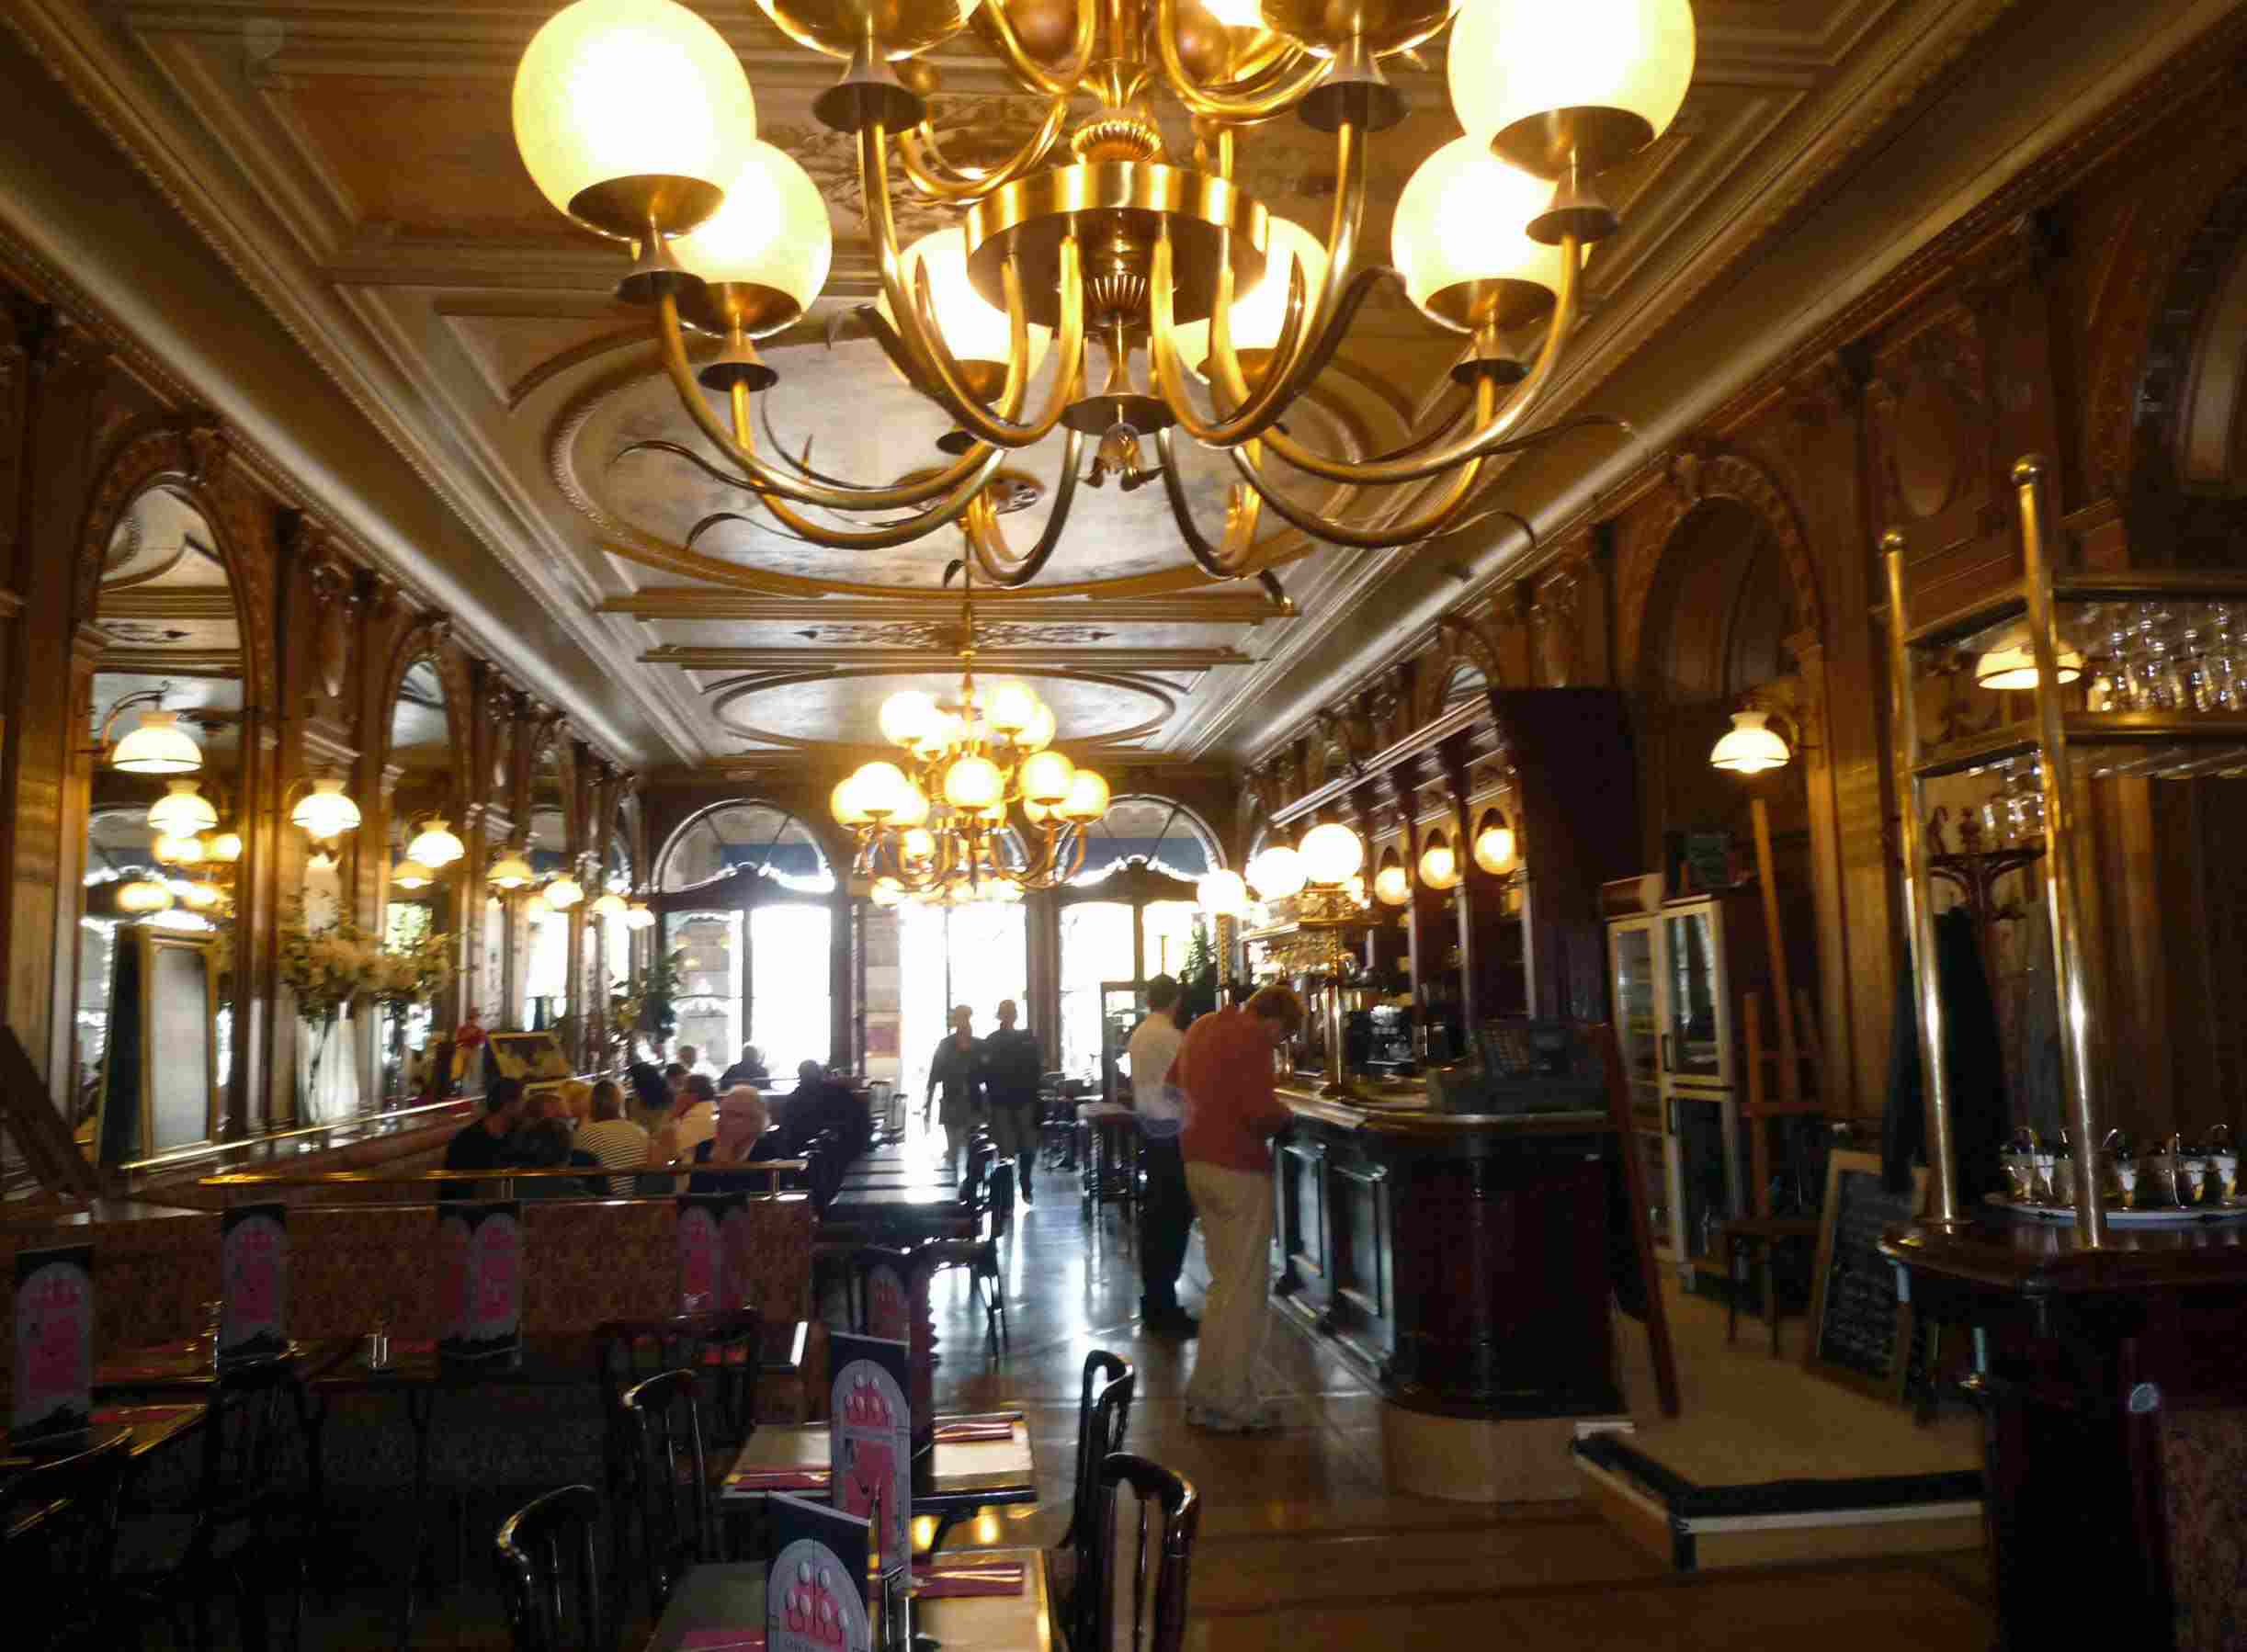 Map Of Paris France 6th Arrondissement.15 Of The Best Traditional Paris Cafes And Brasseries